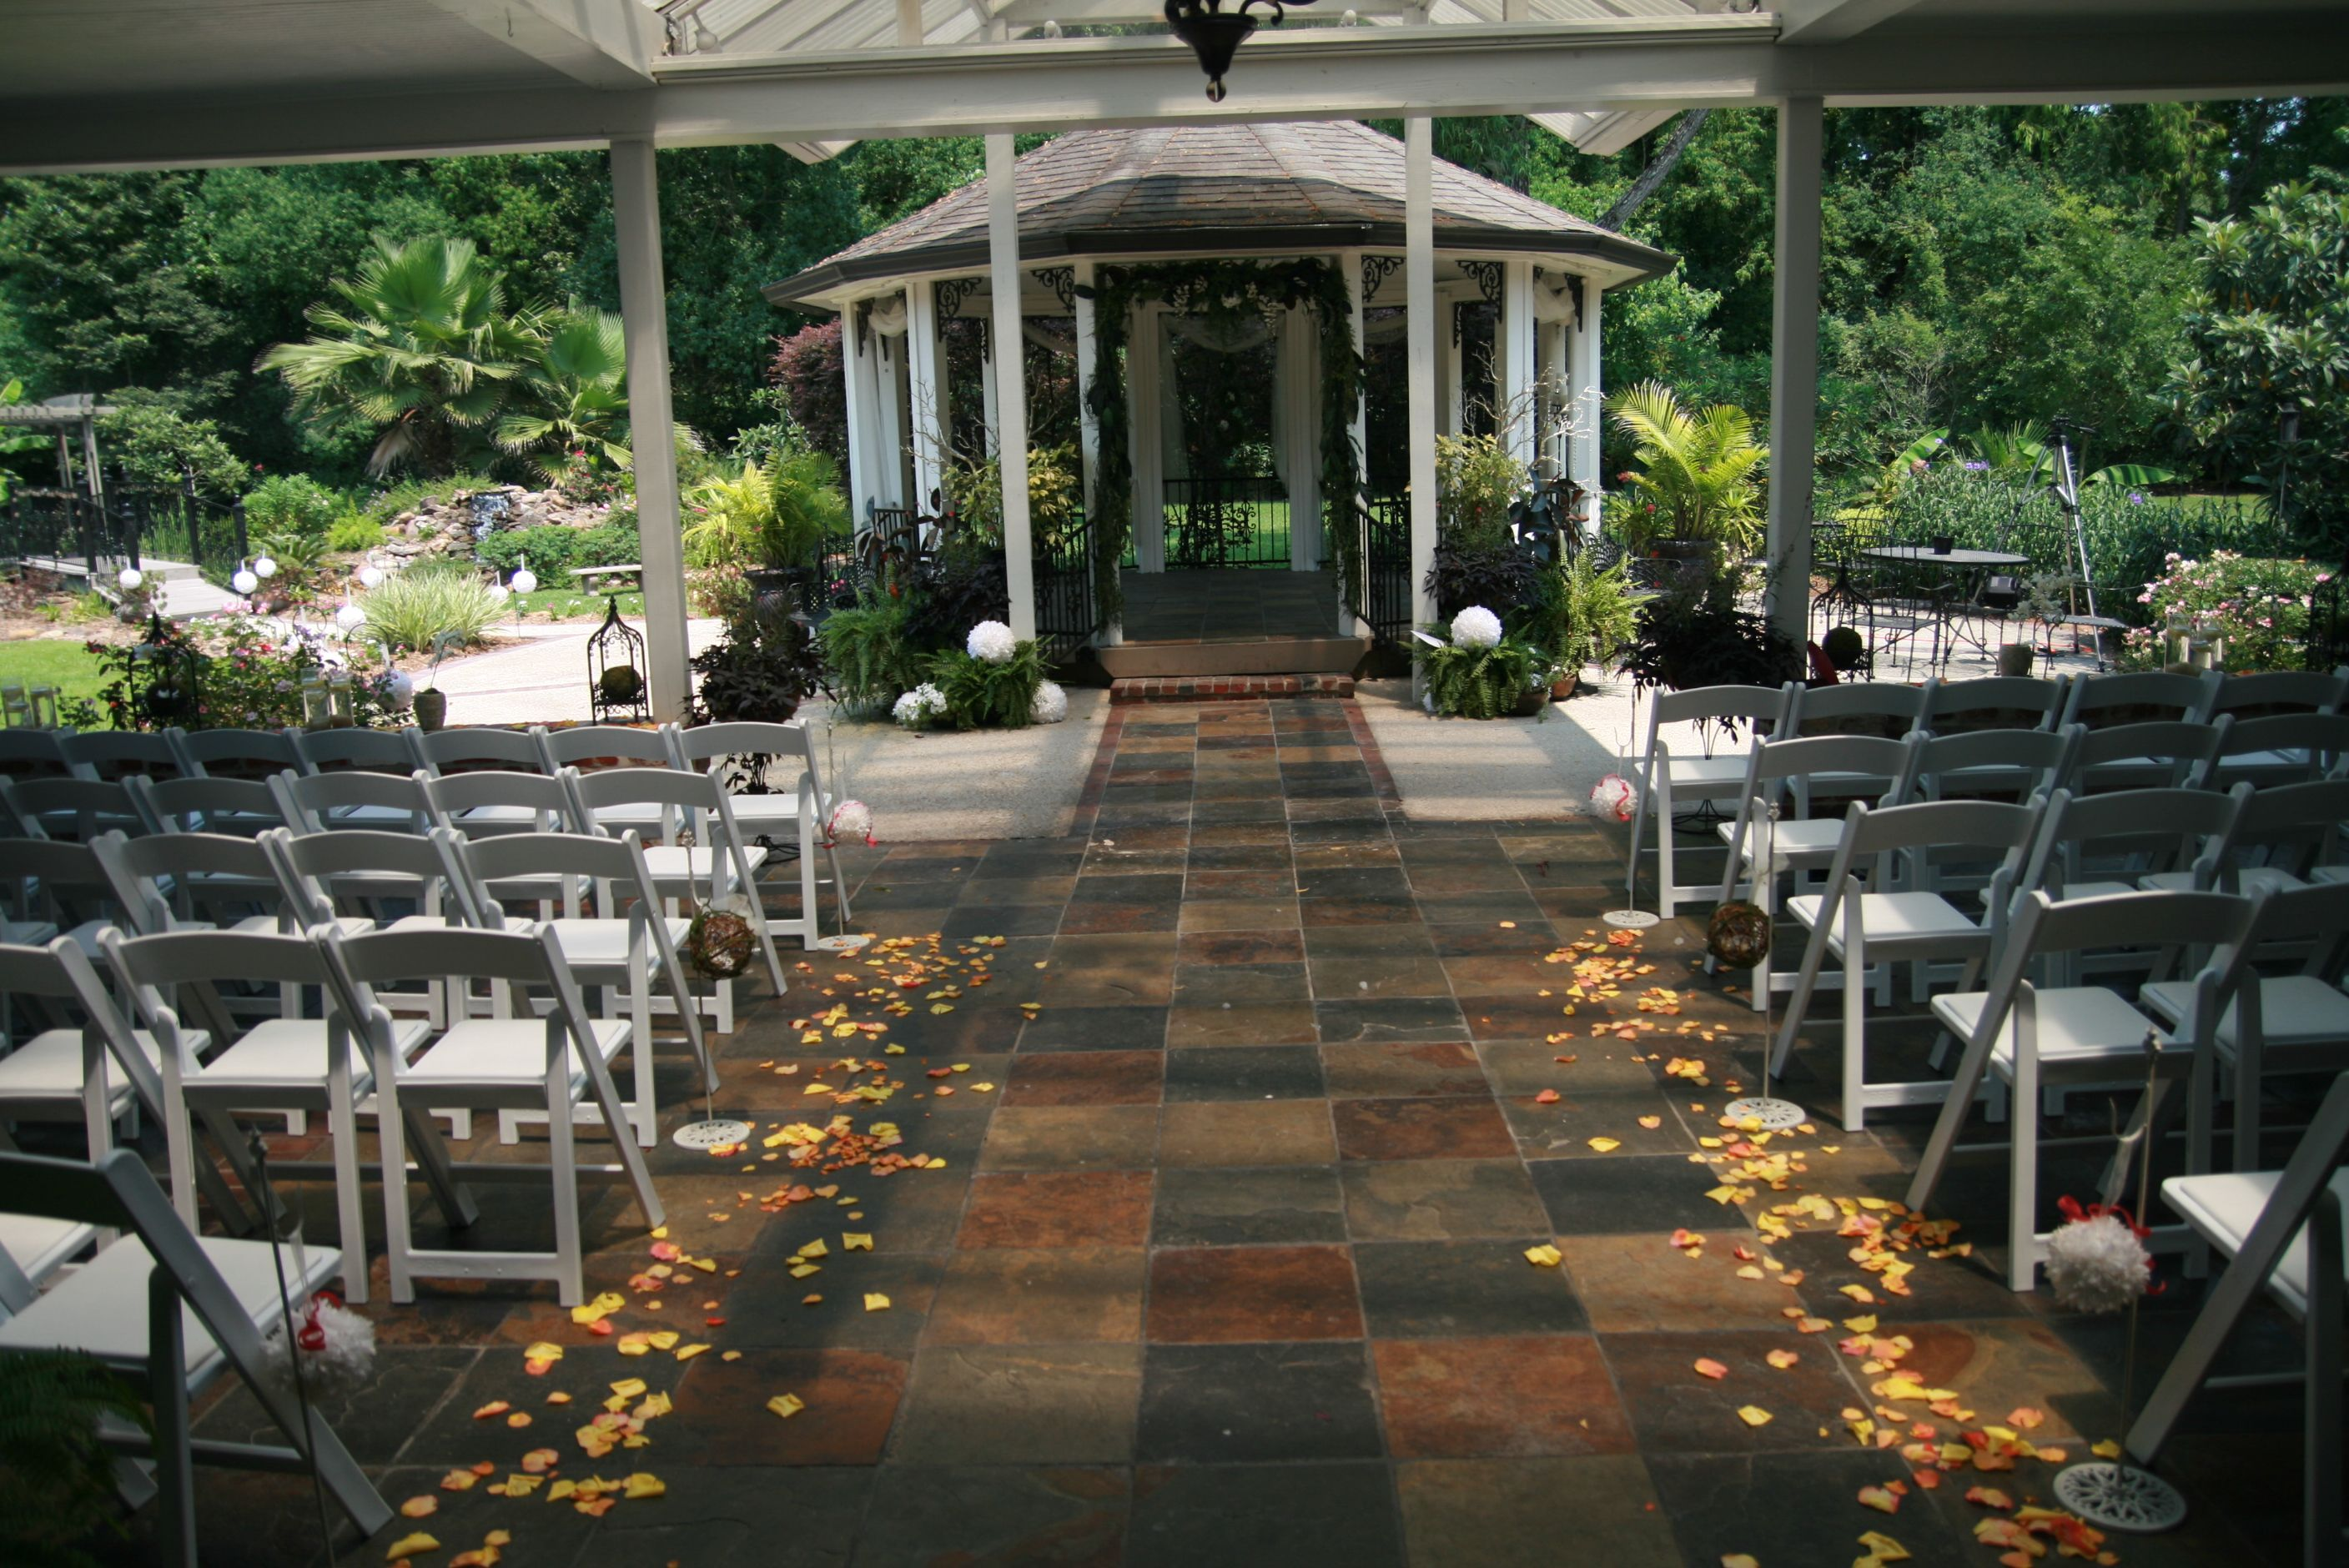 The perfect setting at The Gatehouse in Baton Rouge LA